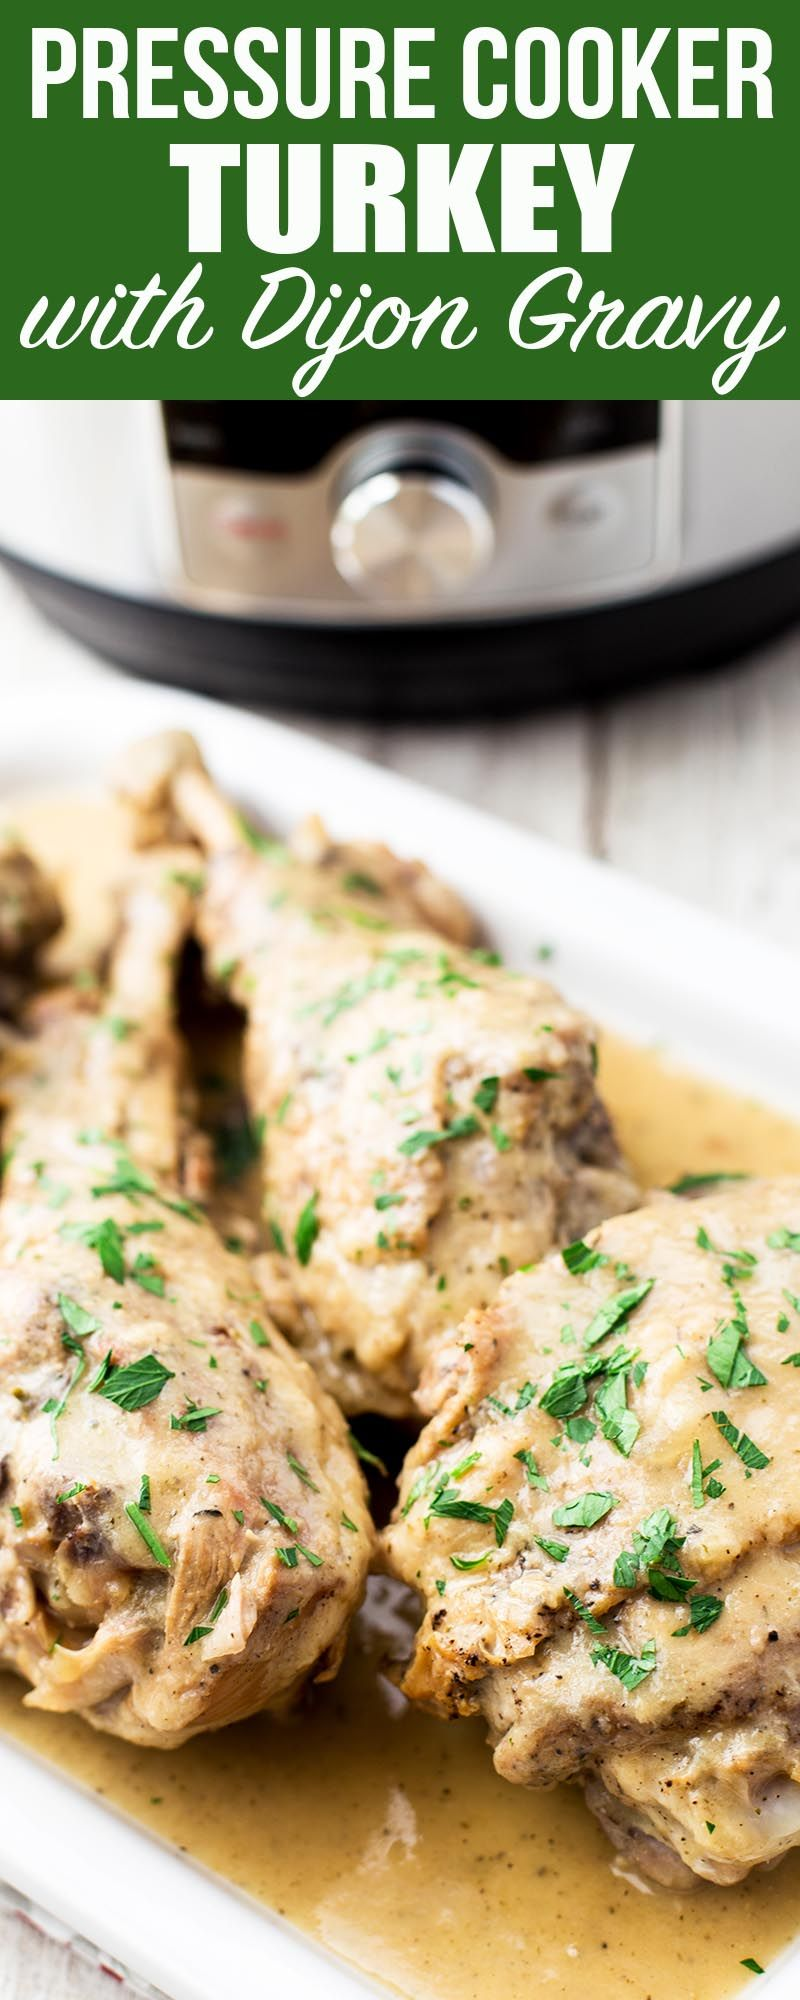 Pressure Cooker Turkey with Dijon Gravy! Make with turkey legs or thighs 1e5808961c5